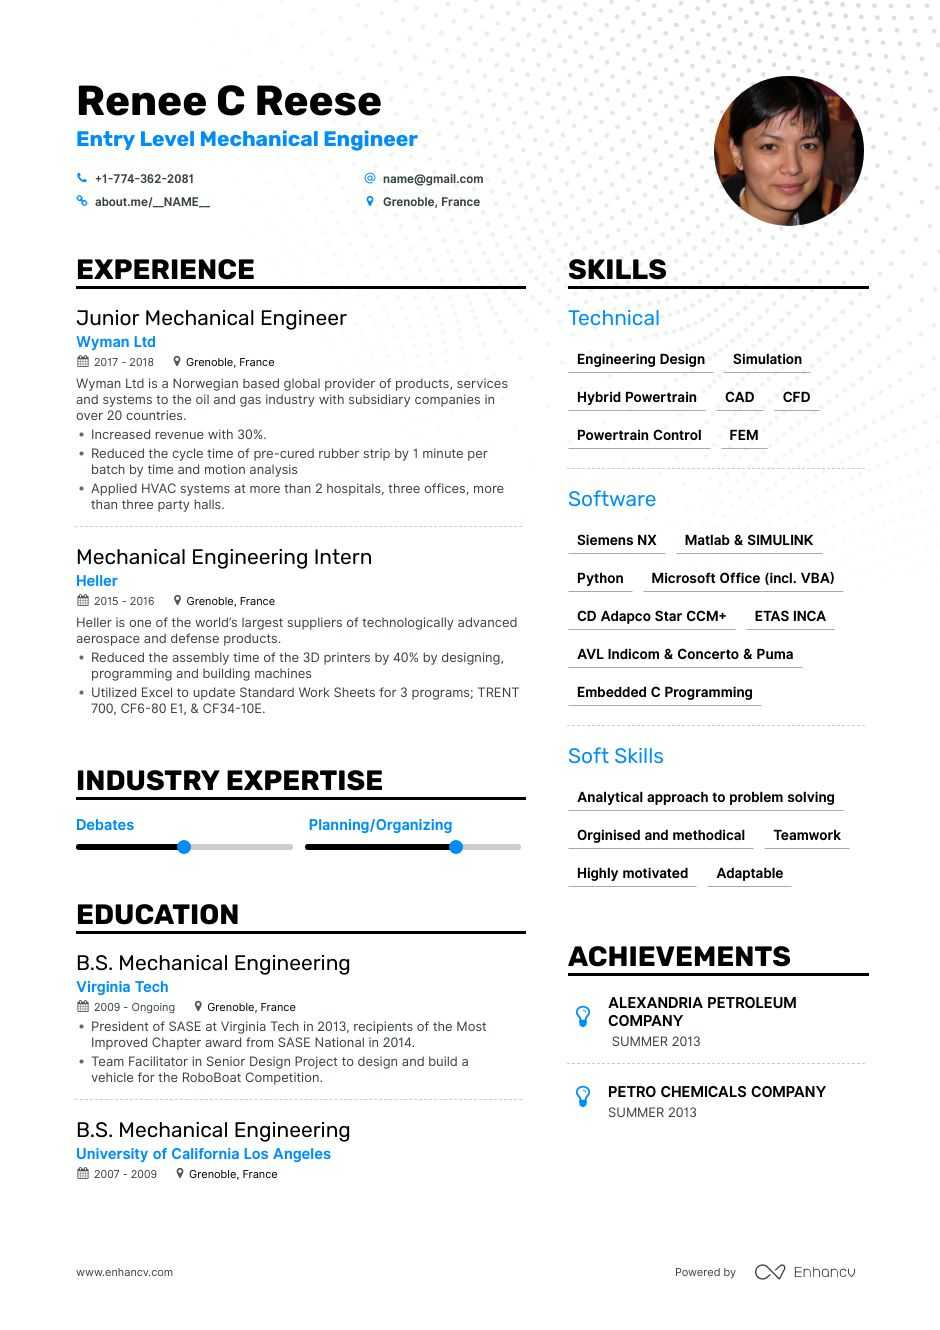 top entry level mechanical engineer resume examples expert tips enhancv good engineering Resume Good Mechanical Engineering Resume